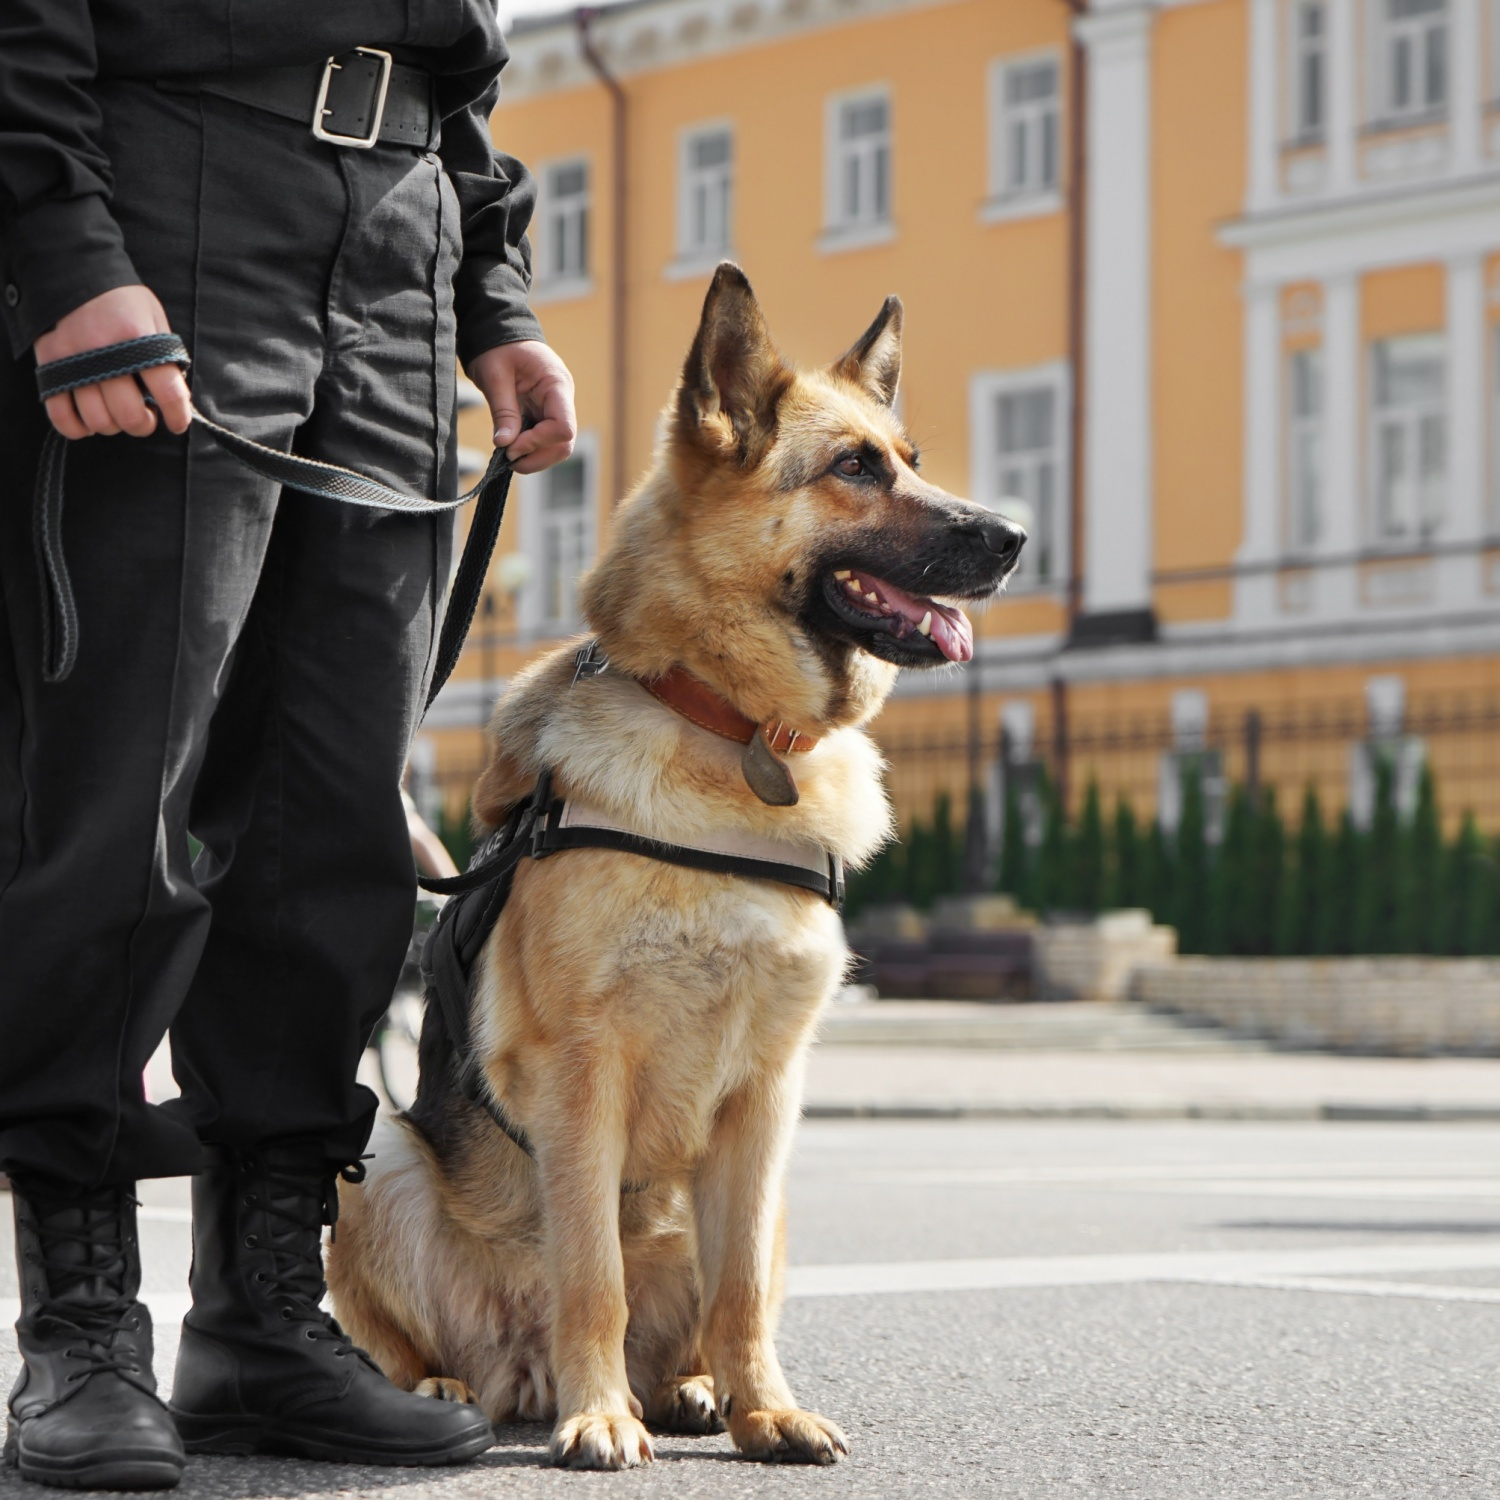 Smart,Police,Dog,Sitting,Outdoors